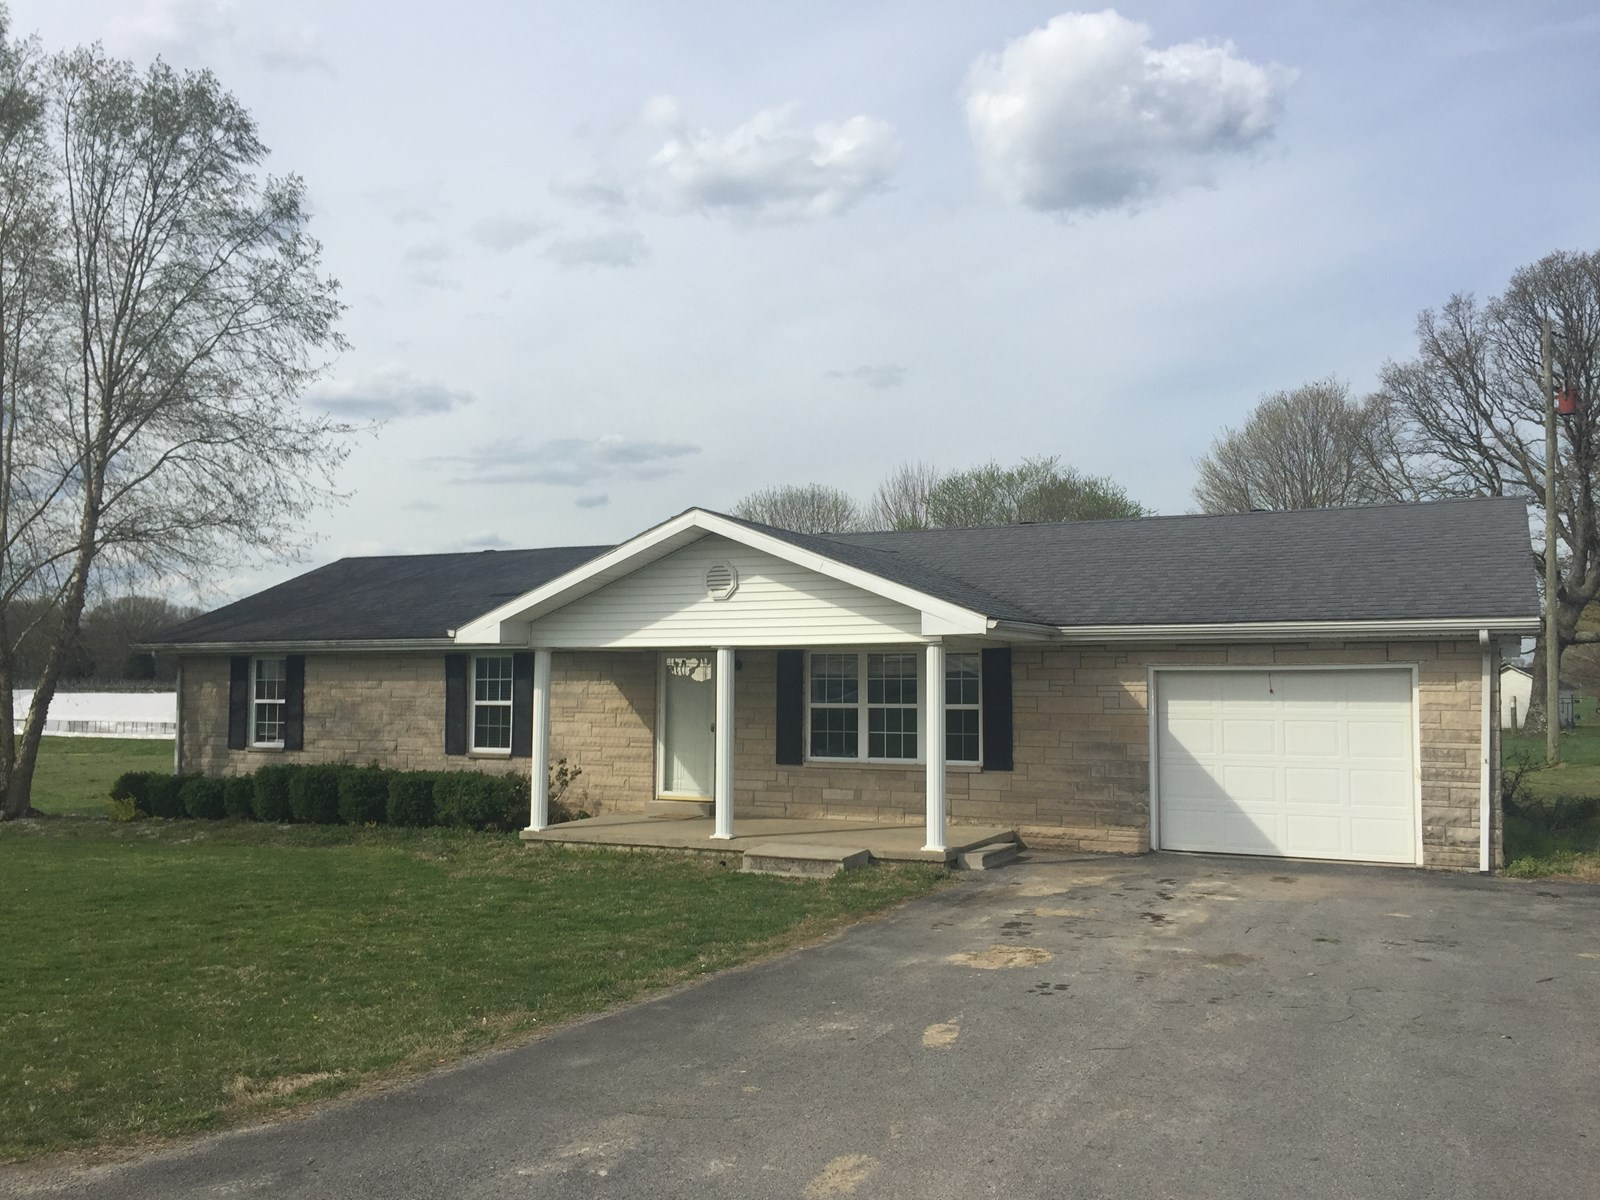 COUNTRY HOME WITH 4 BEDROOMS & ATTACHED GARAGE - LIBERTY, KY